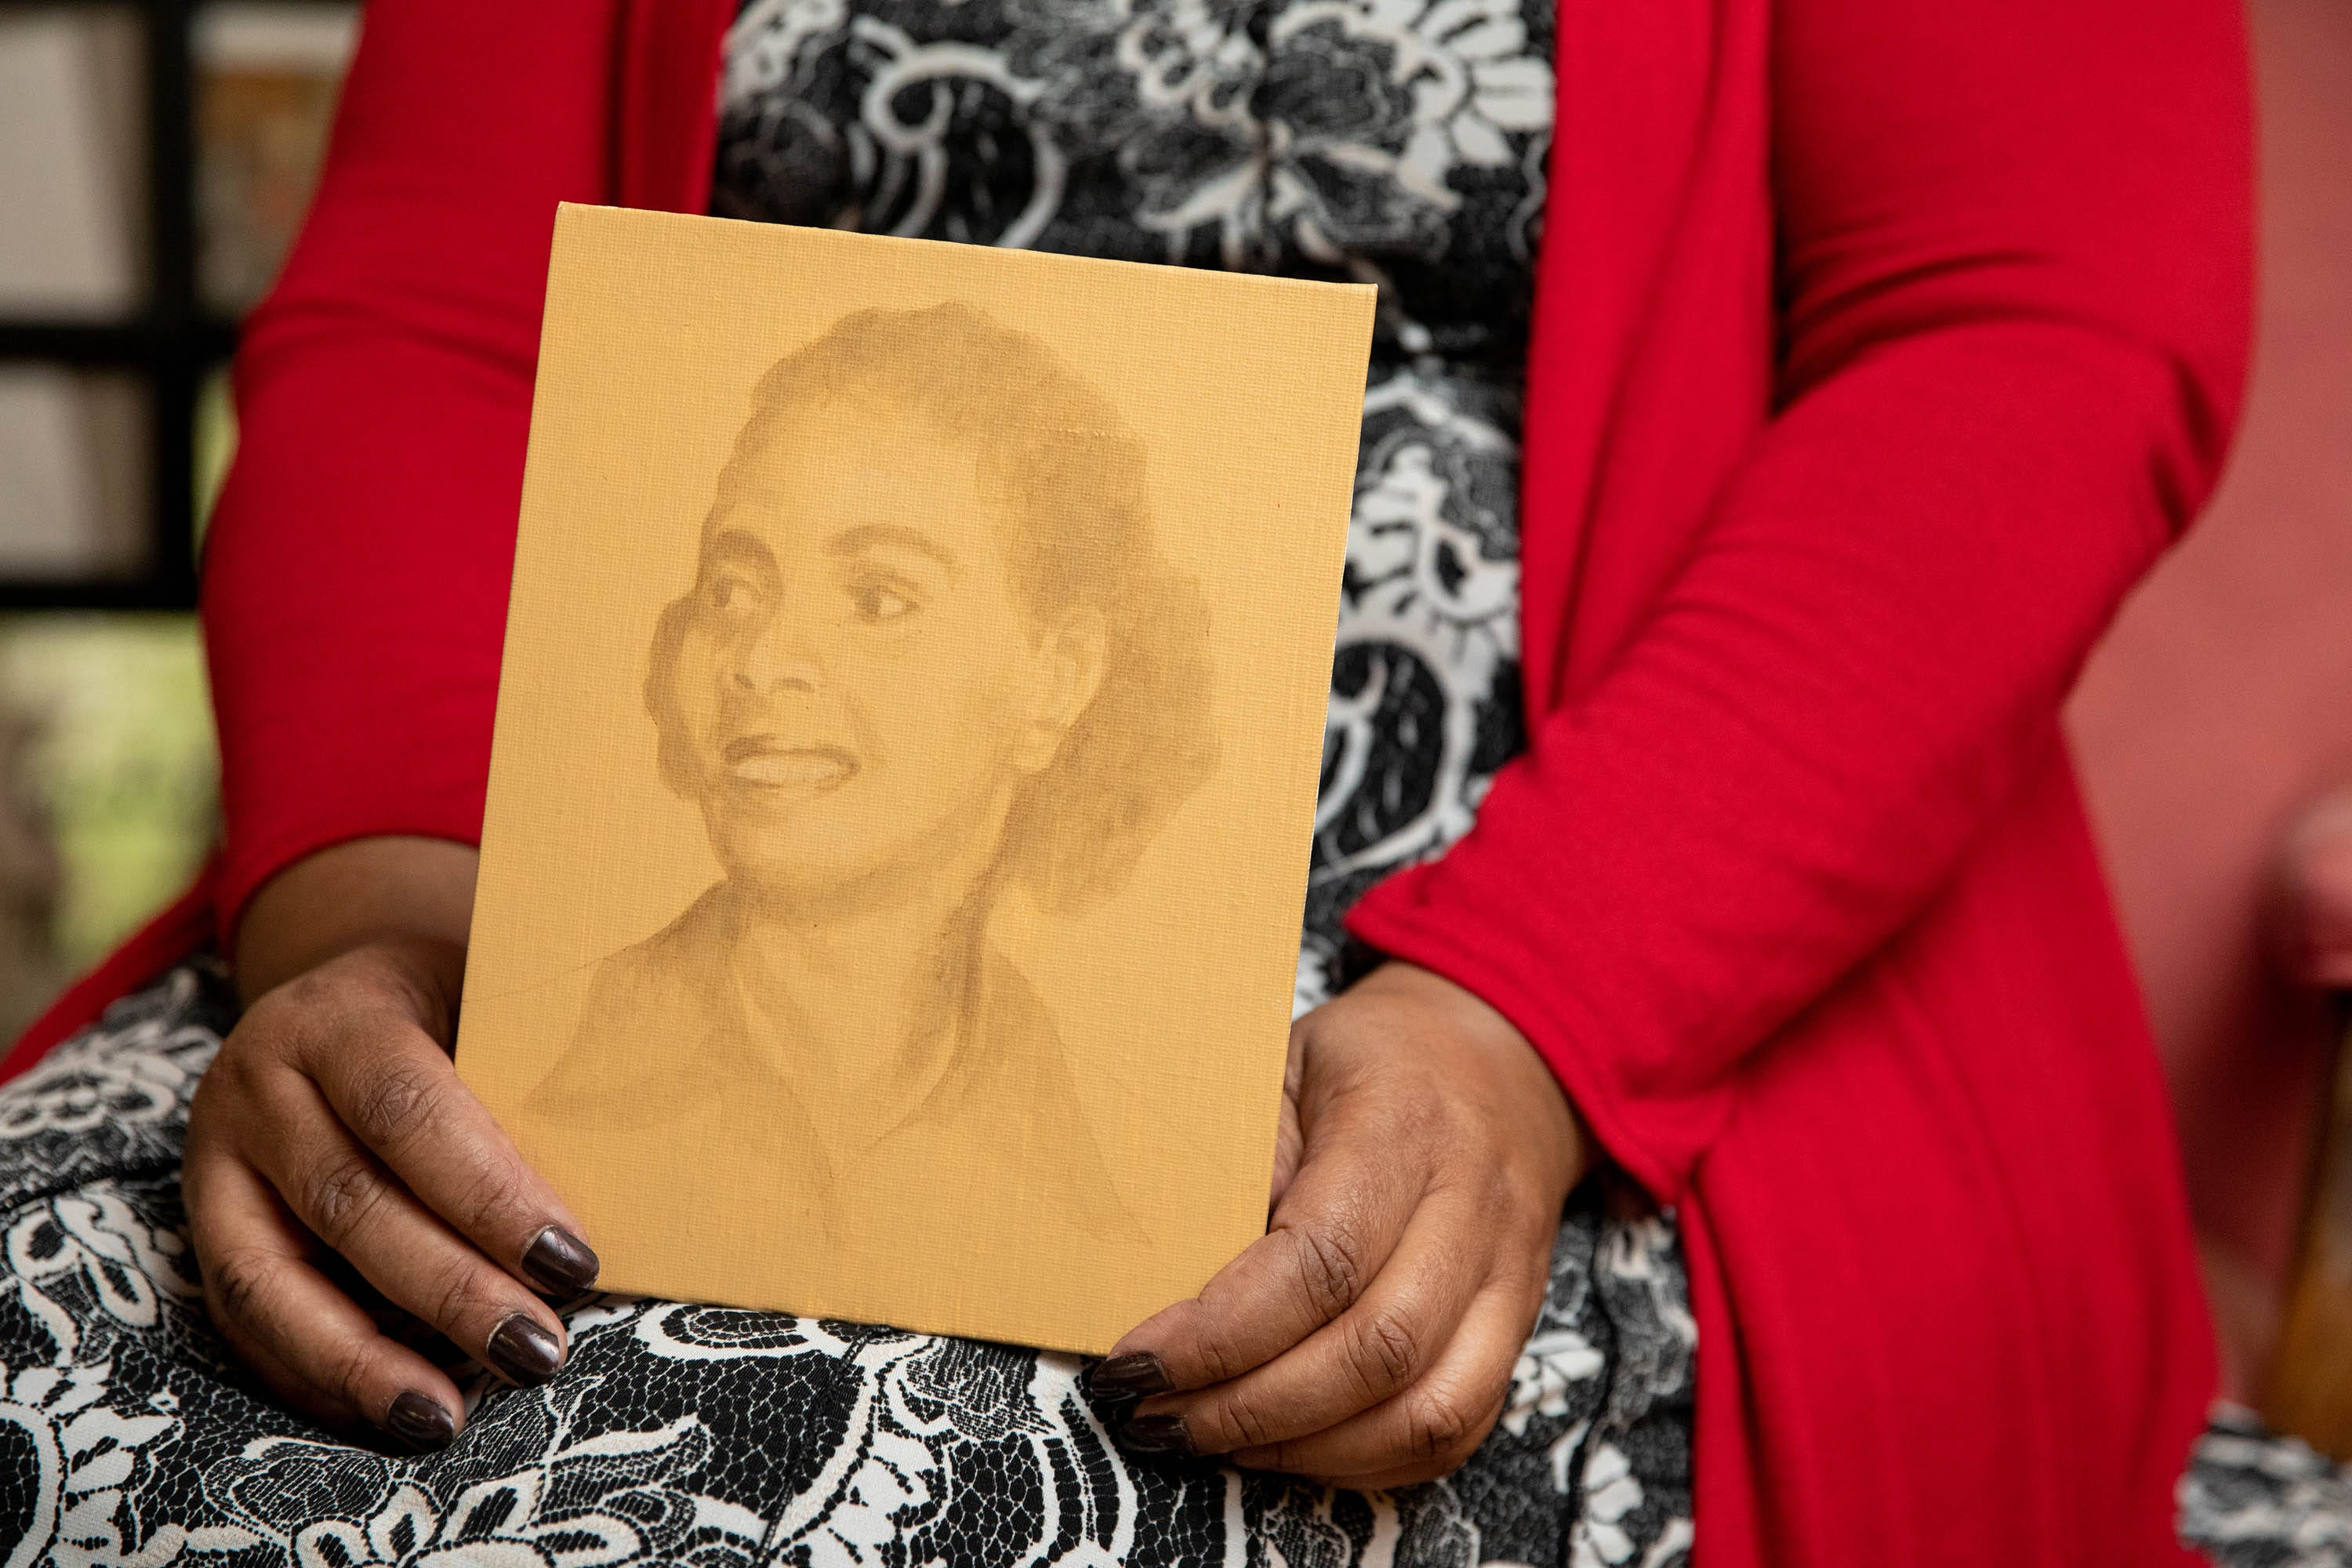 Janine Bacquie, of Rockville, Md., holds a sketch of her grandmother Irene Morgan, the plaintiff in the landmark Supreme Court case Morgan vs. Virginia.